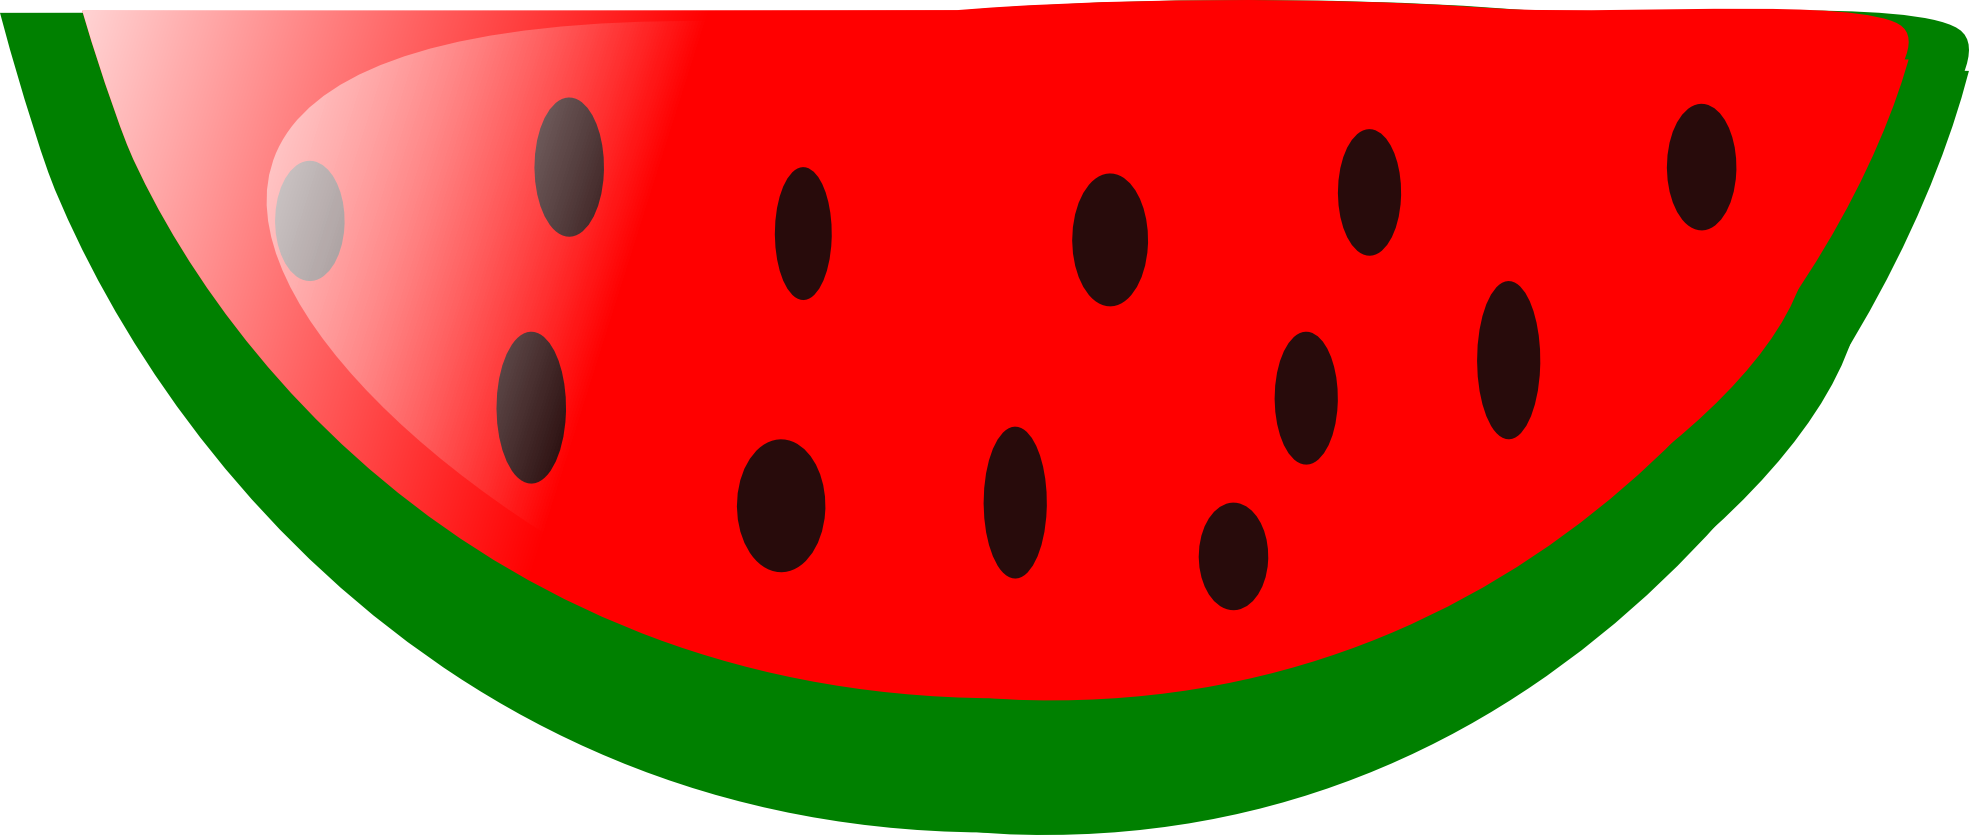 Watermelon Clipart Free Images